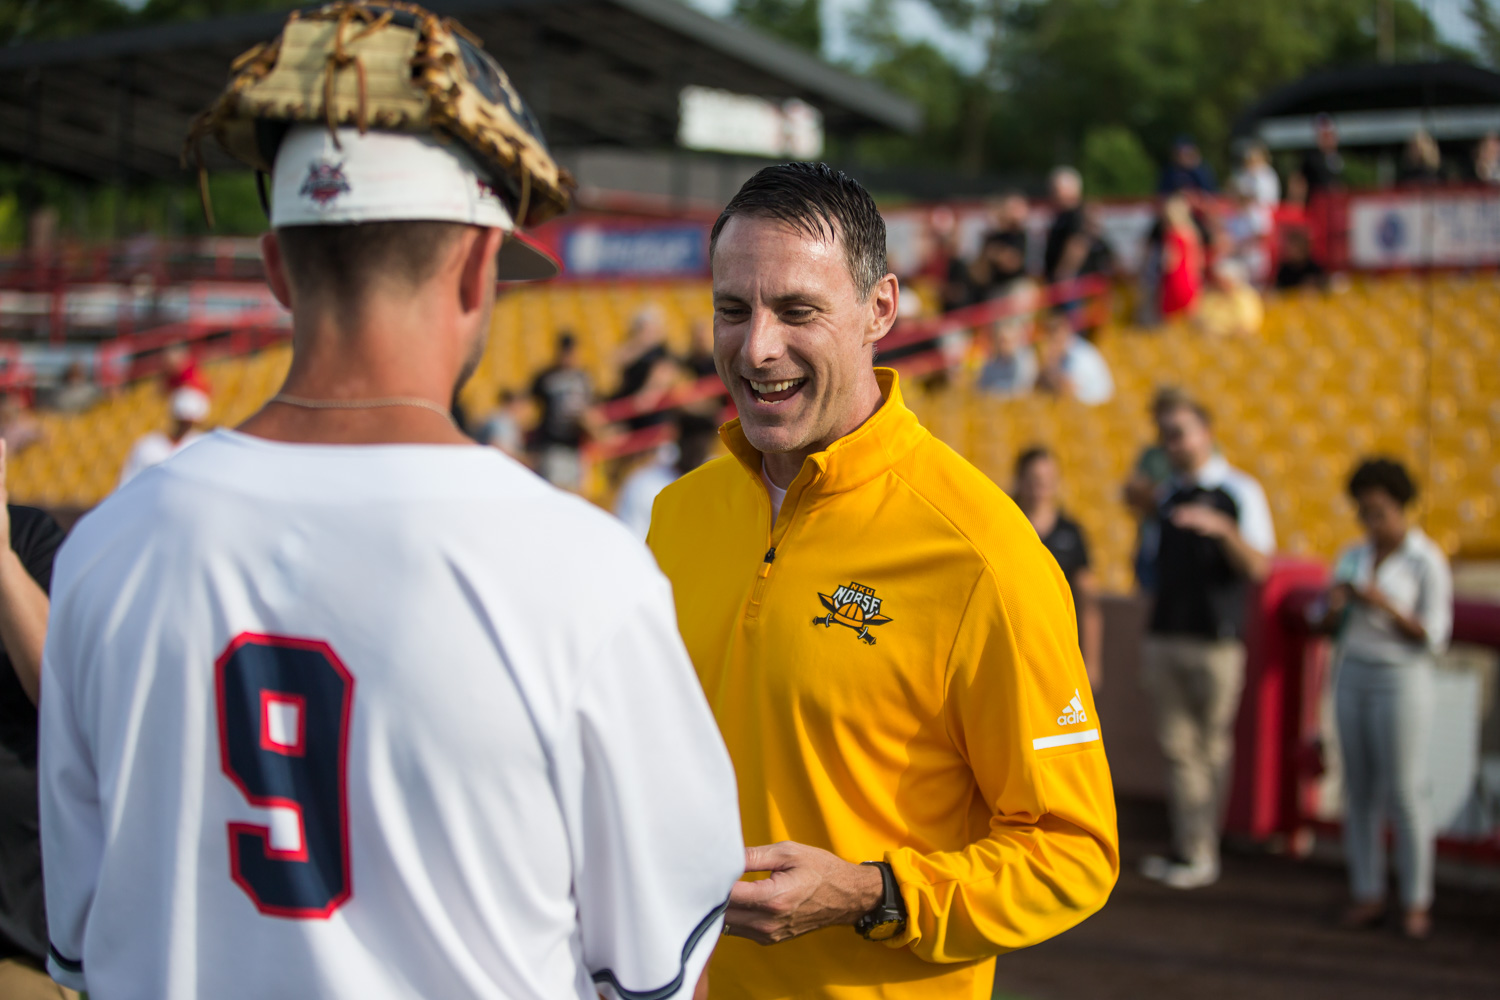 Men%27s+Basketball+Head+Coach+Darrin+Horn+receives+a+signed+ball+from+a+Florence+Freedom+player+on+NKU+night+at+the+Florence+Freedom+Baseball+Game.